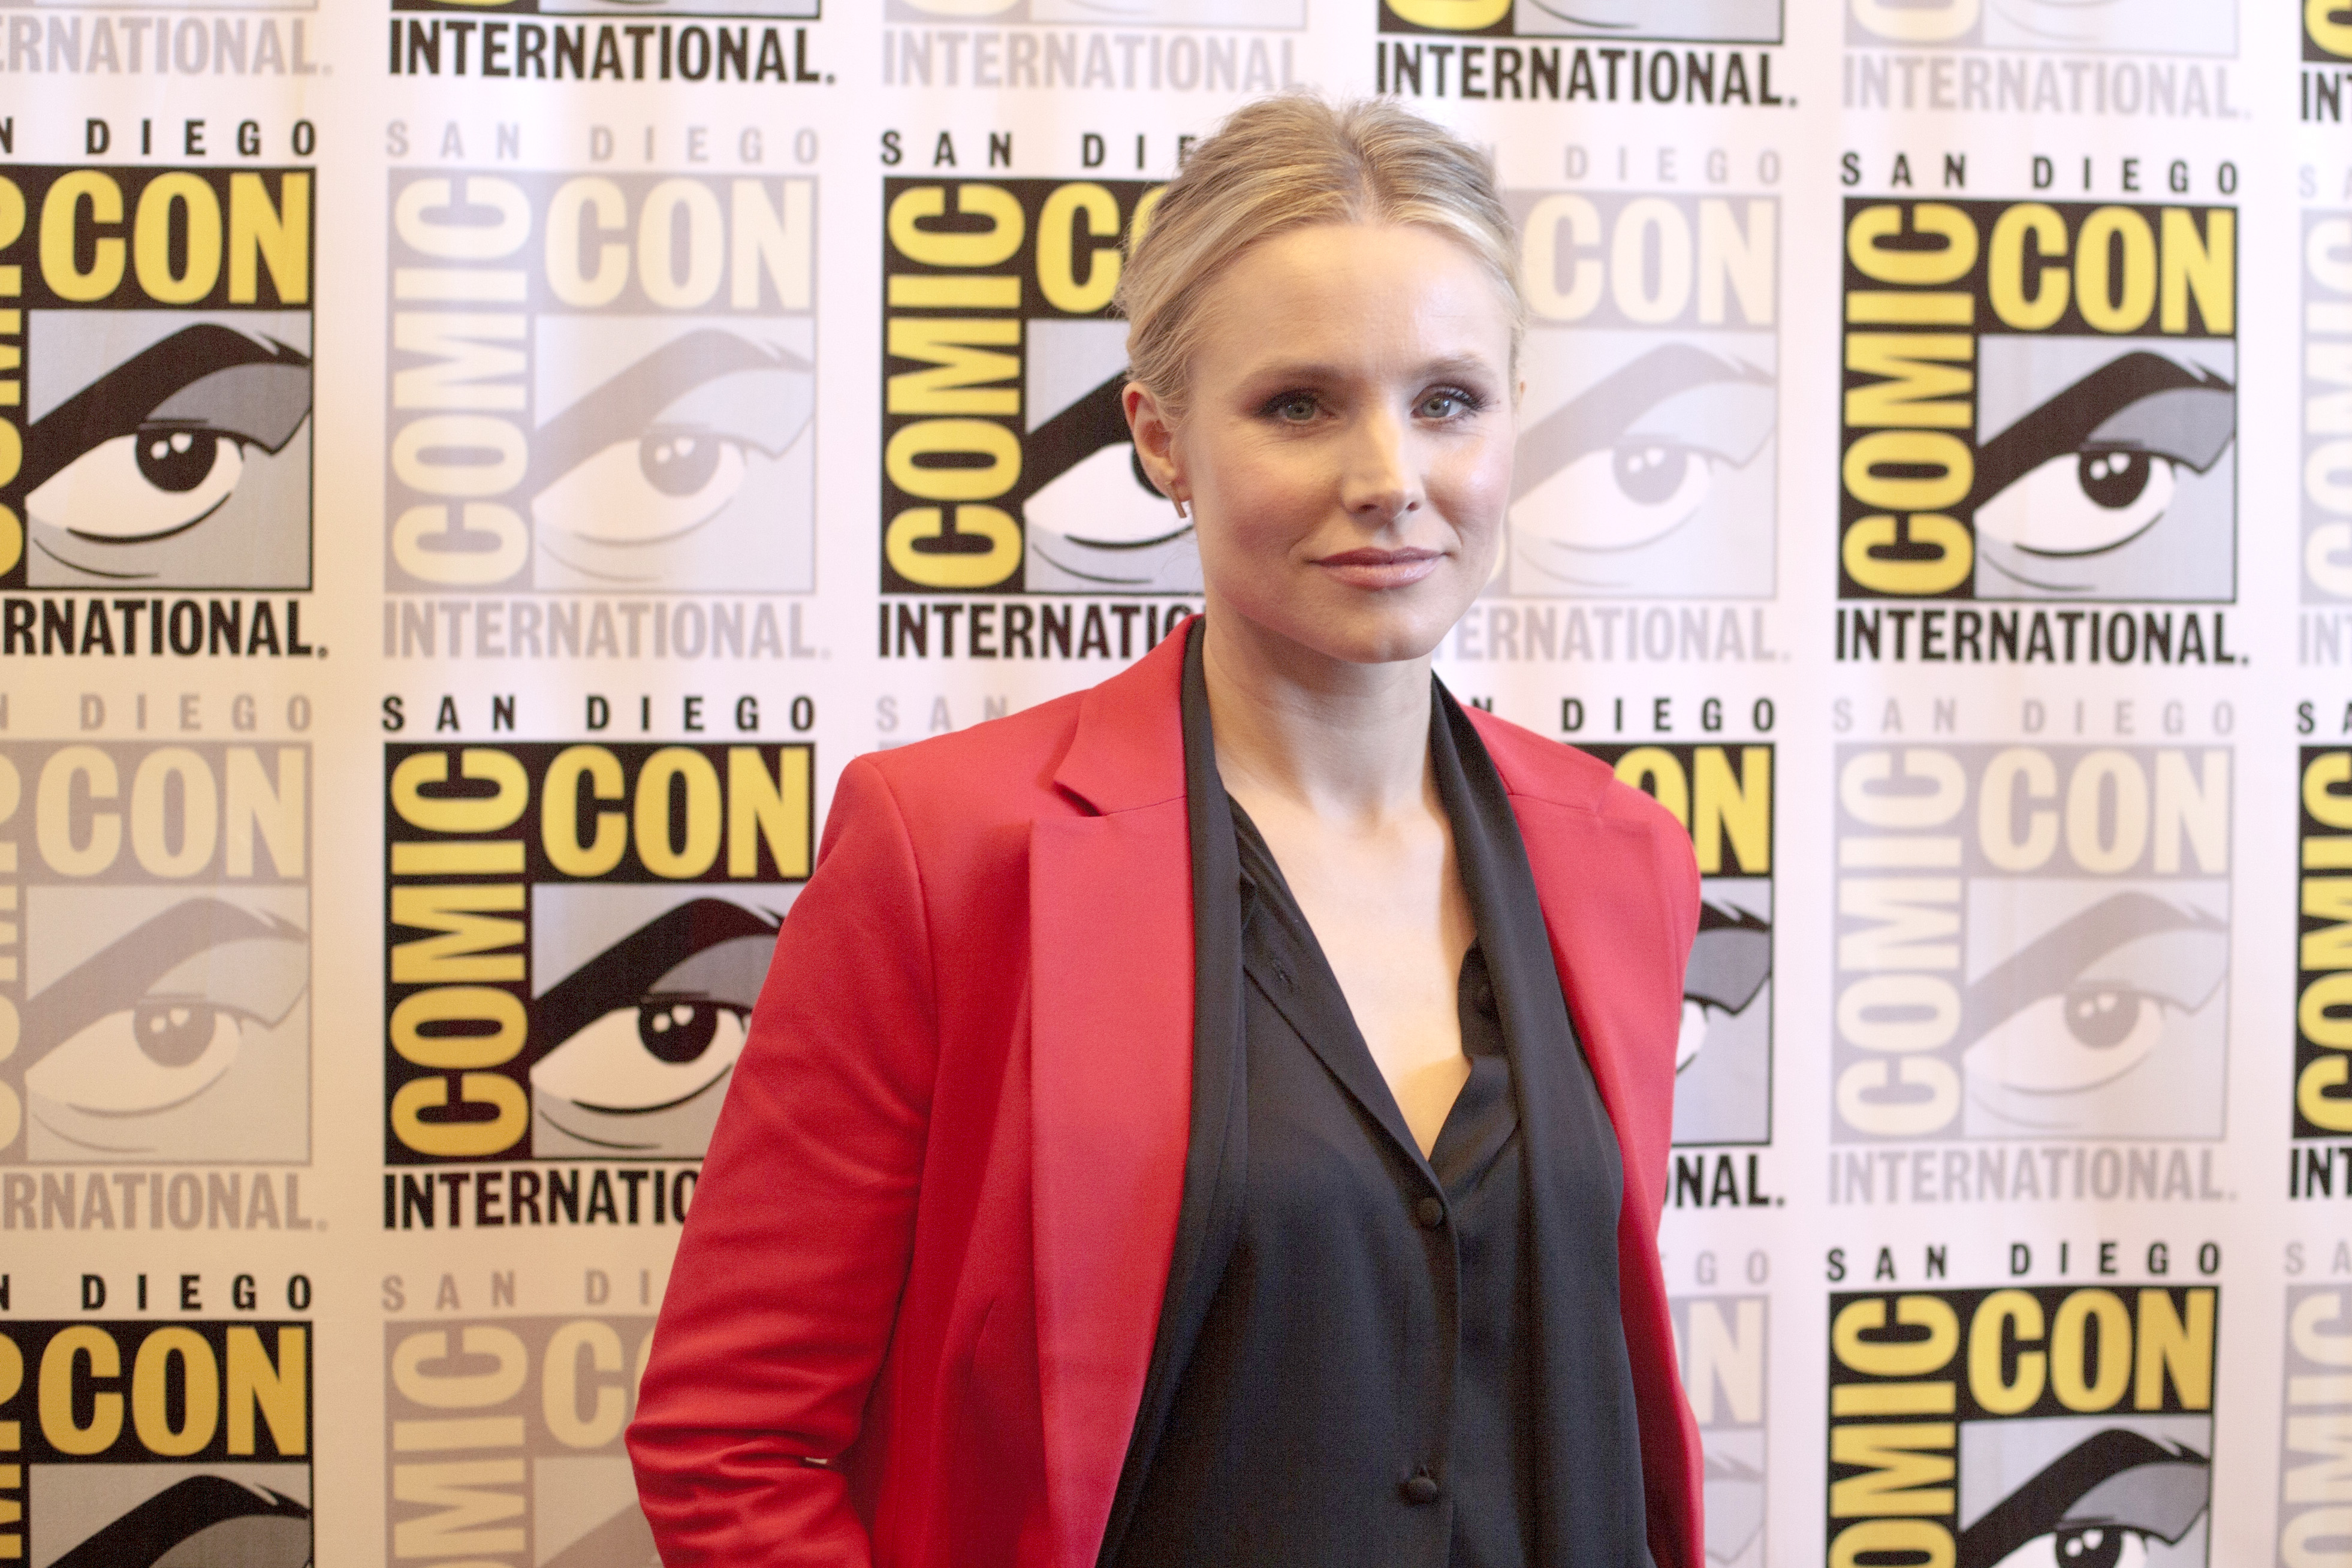 2018 San Diego Comic Con - The Good Place - PhotocallFeaturing: Kristen BellWhere: San Diego, California, United StatesWhen: 21 Jul 2018Credit: Tony Forte/WENN